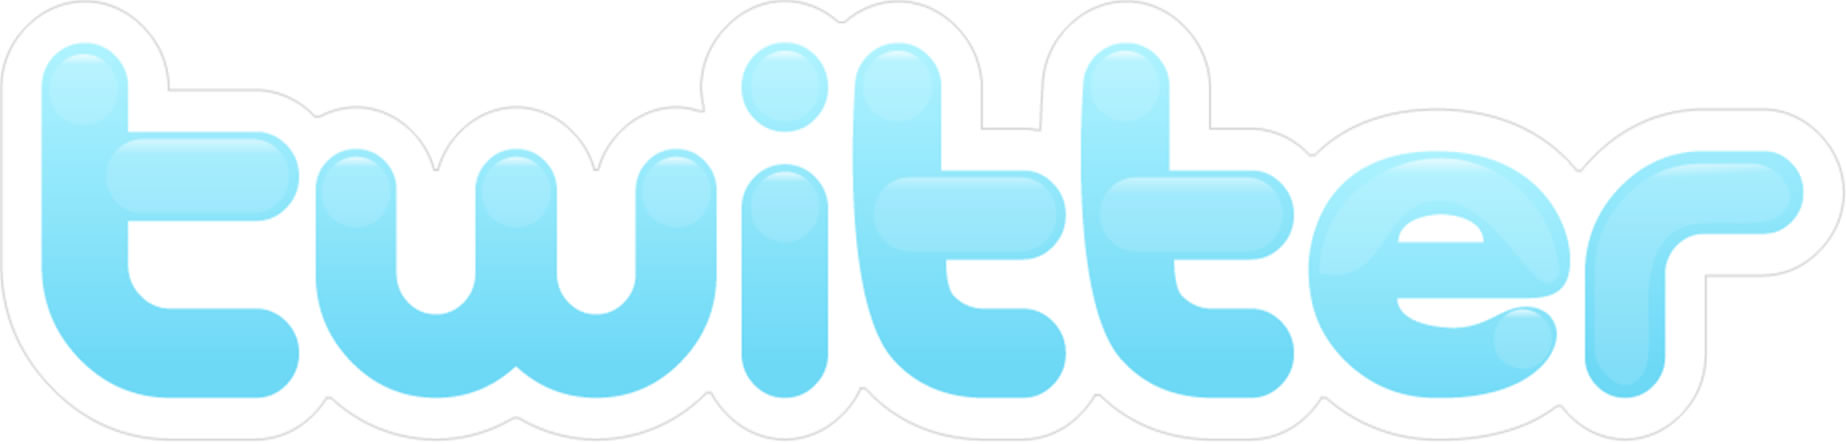 Twitter 101: How to use Twitter